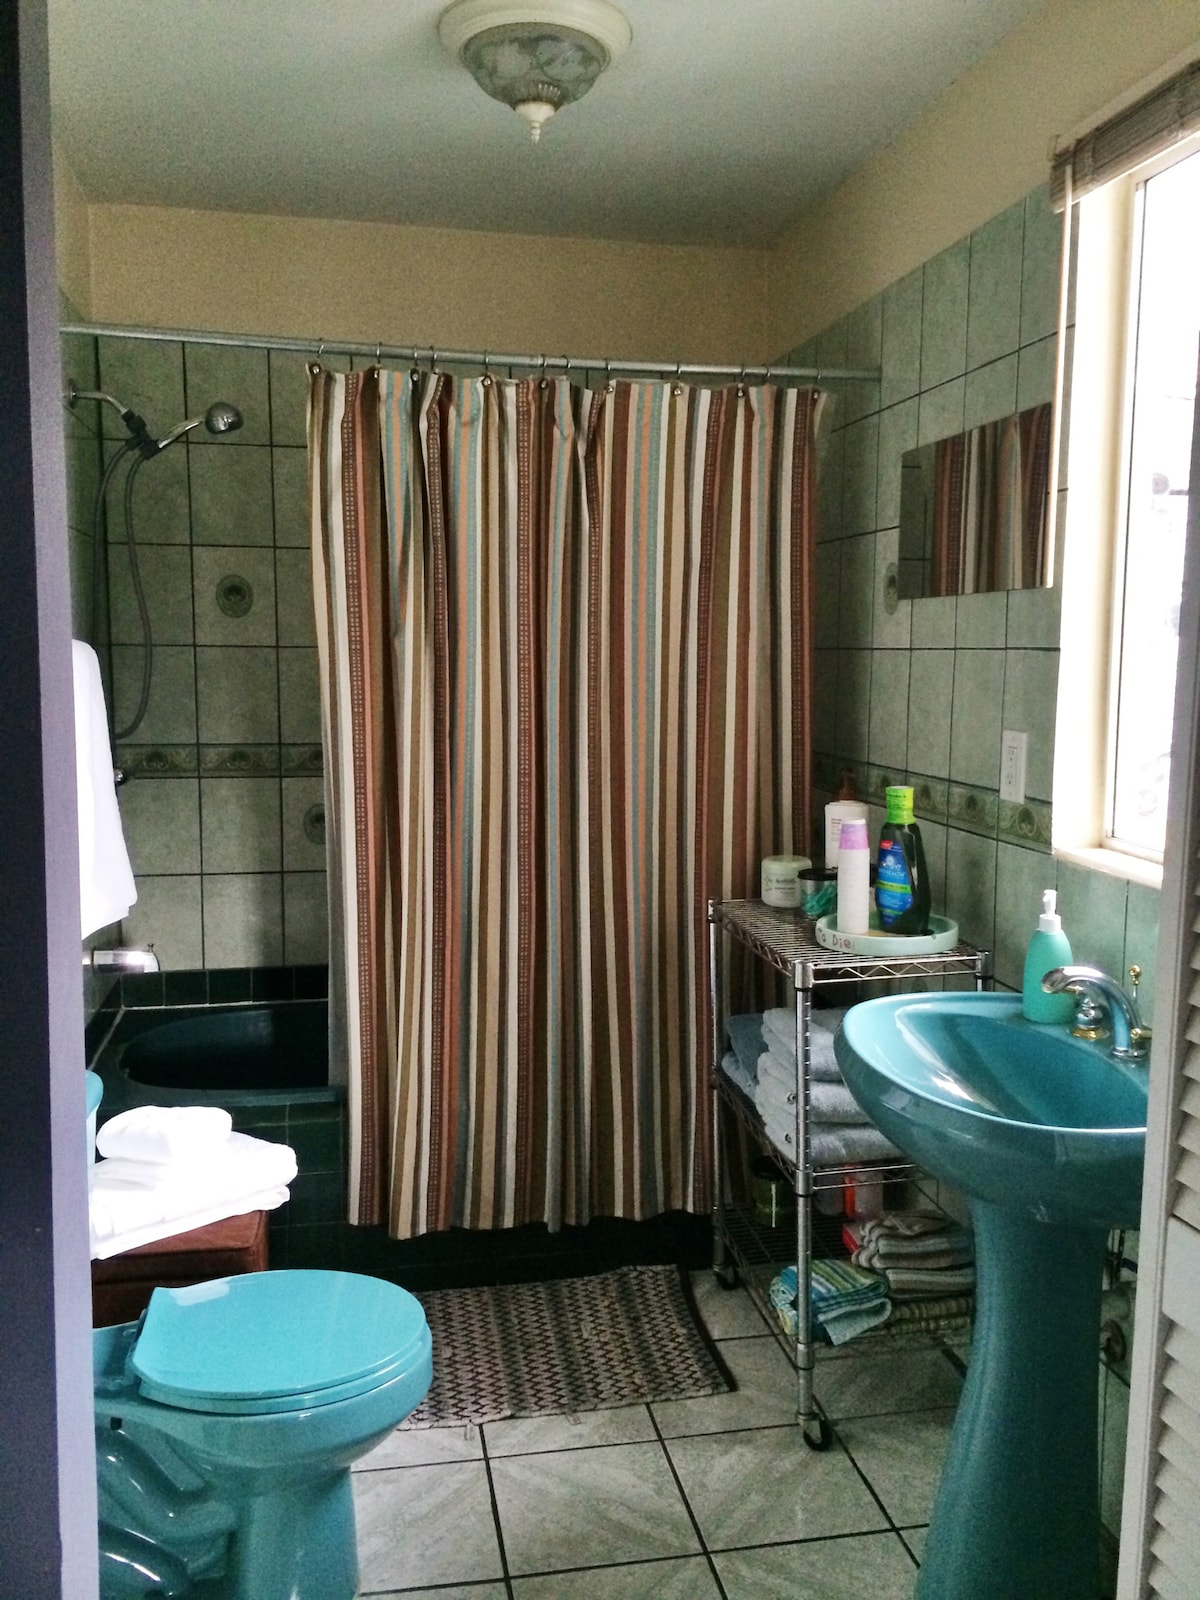 Main bathroom is private for the main bedroom.